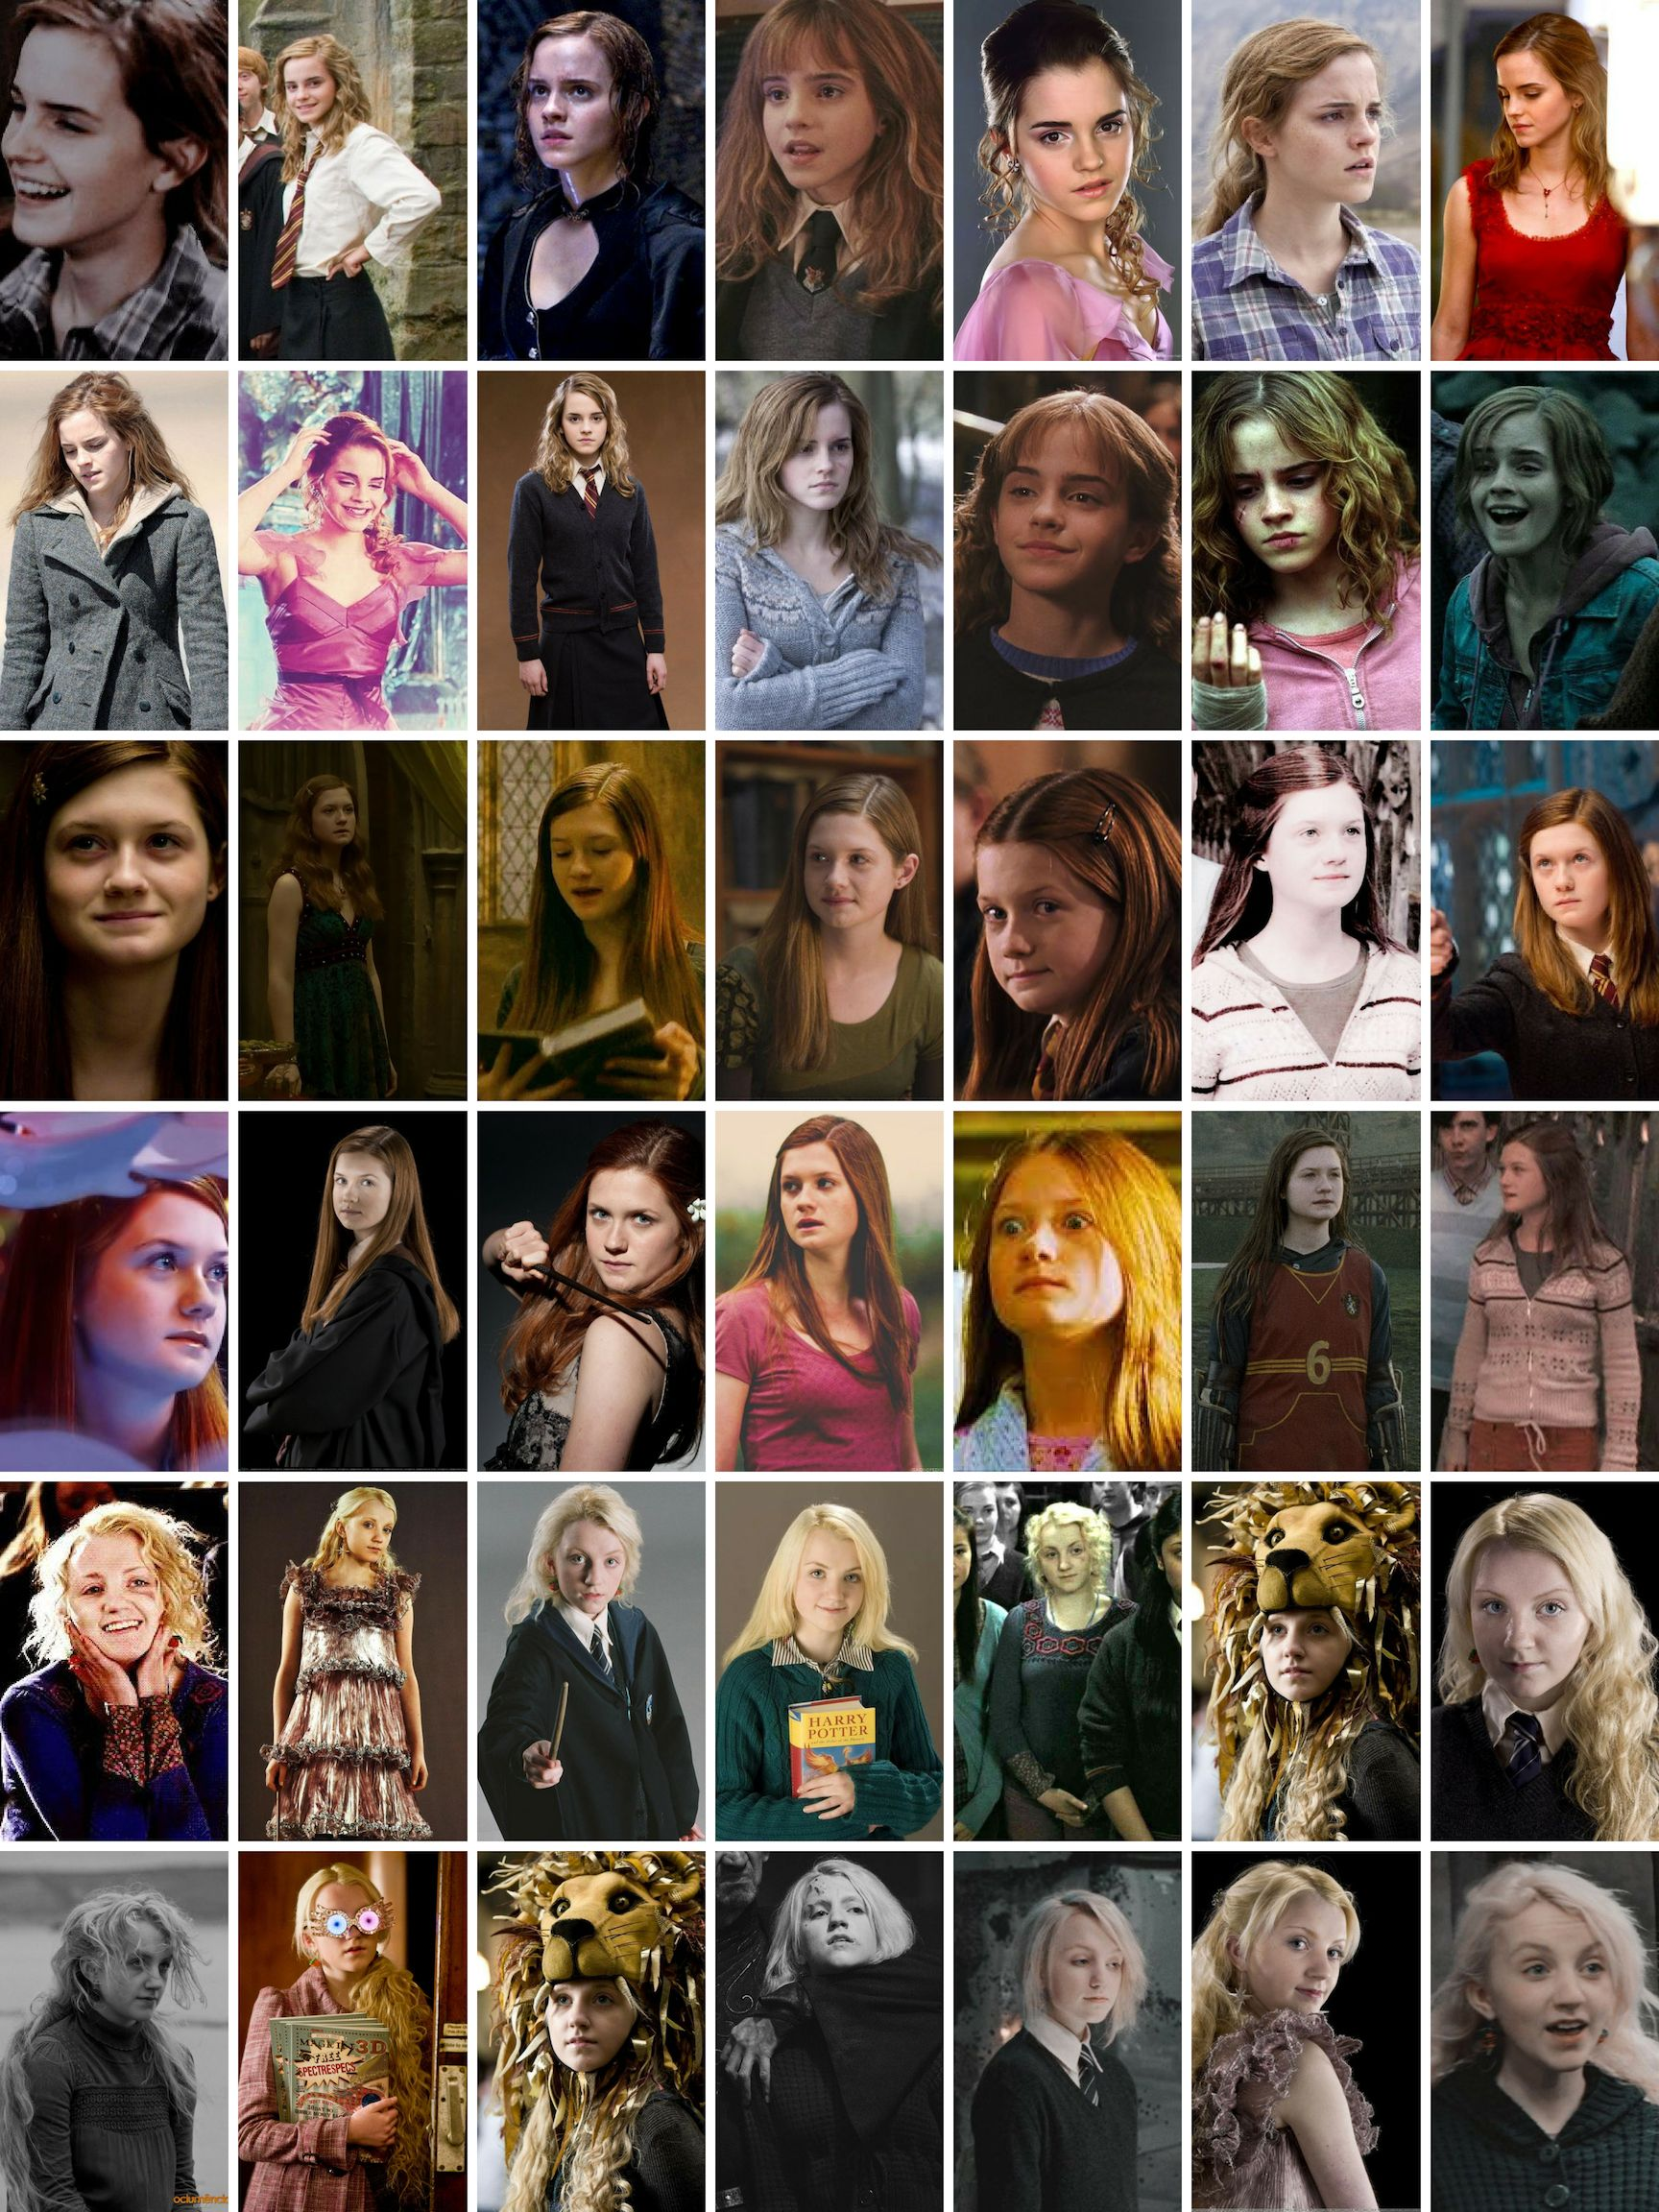 Hermione Ginny Luna Harry Potter Pictures Lestrange Harry Potter Harry And Ginny